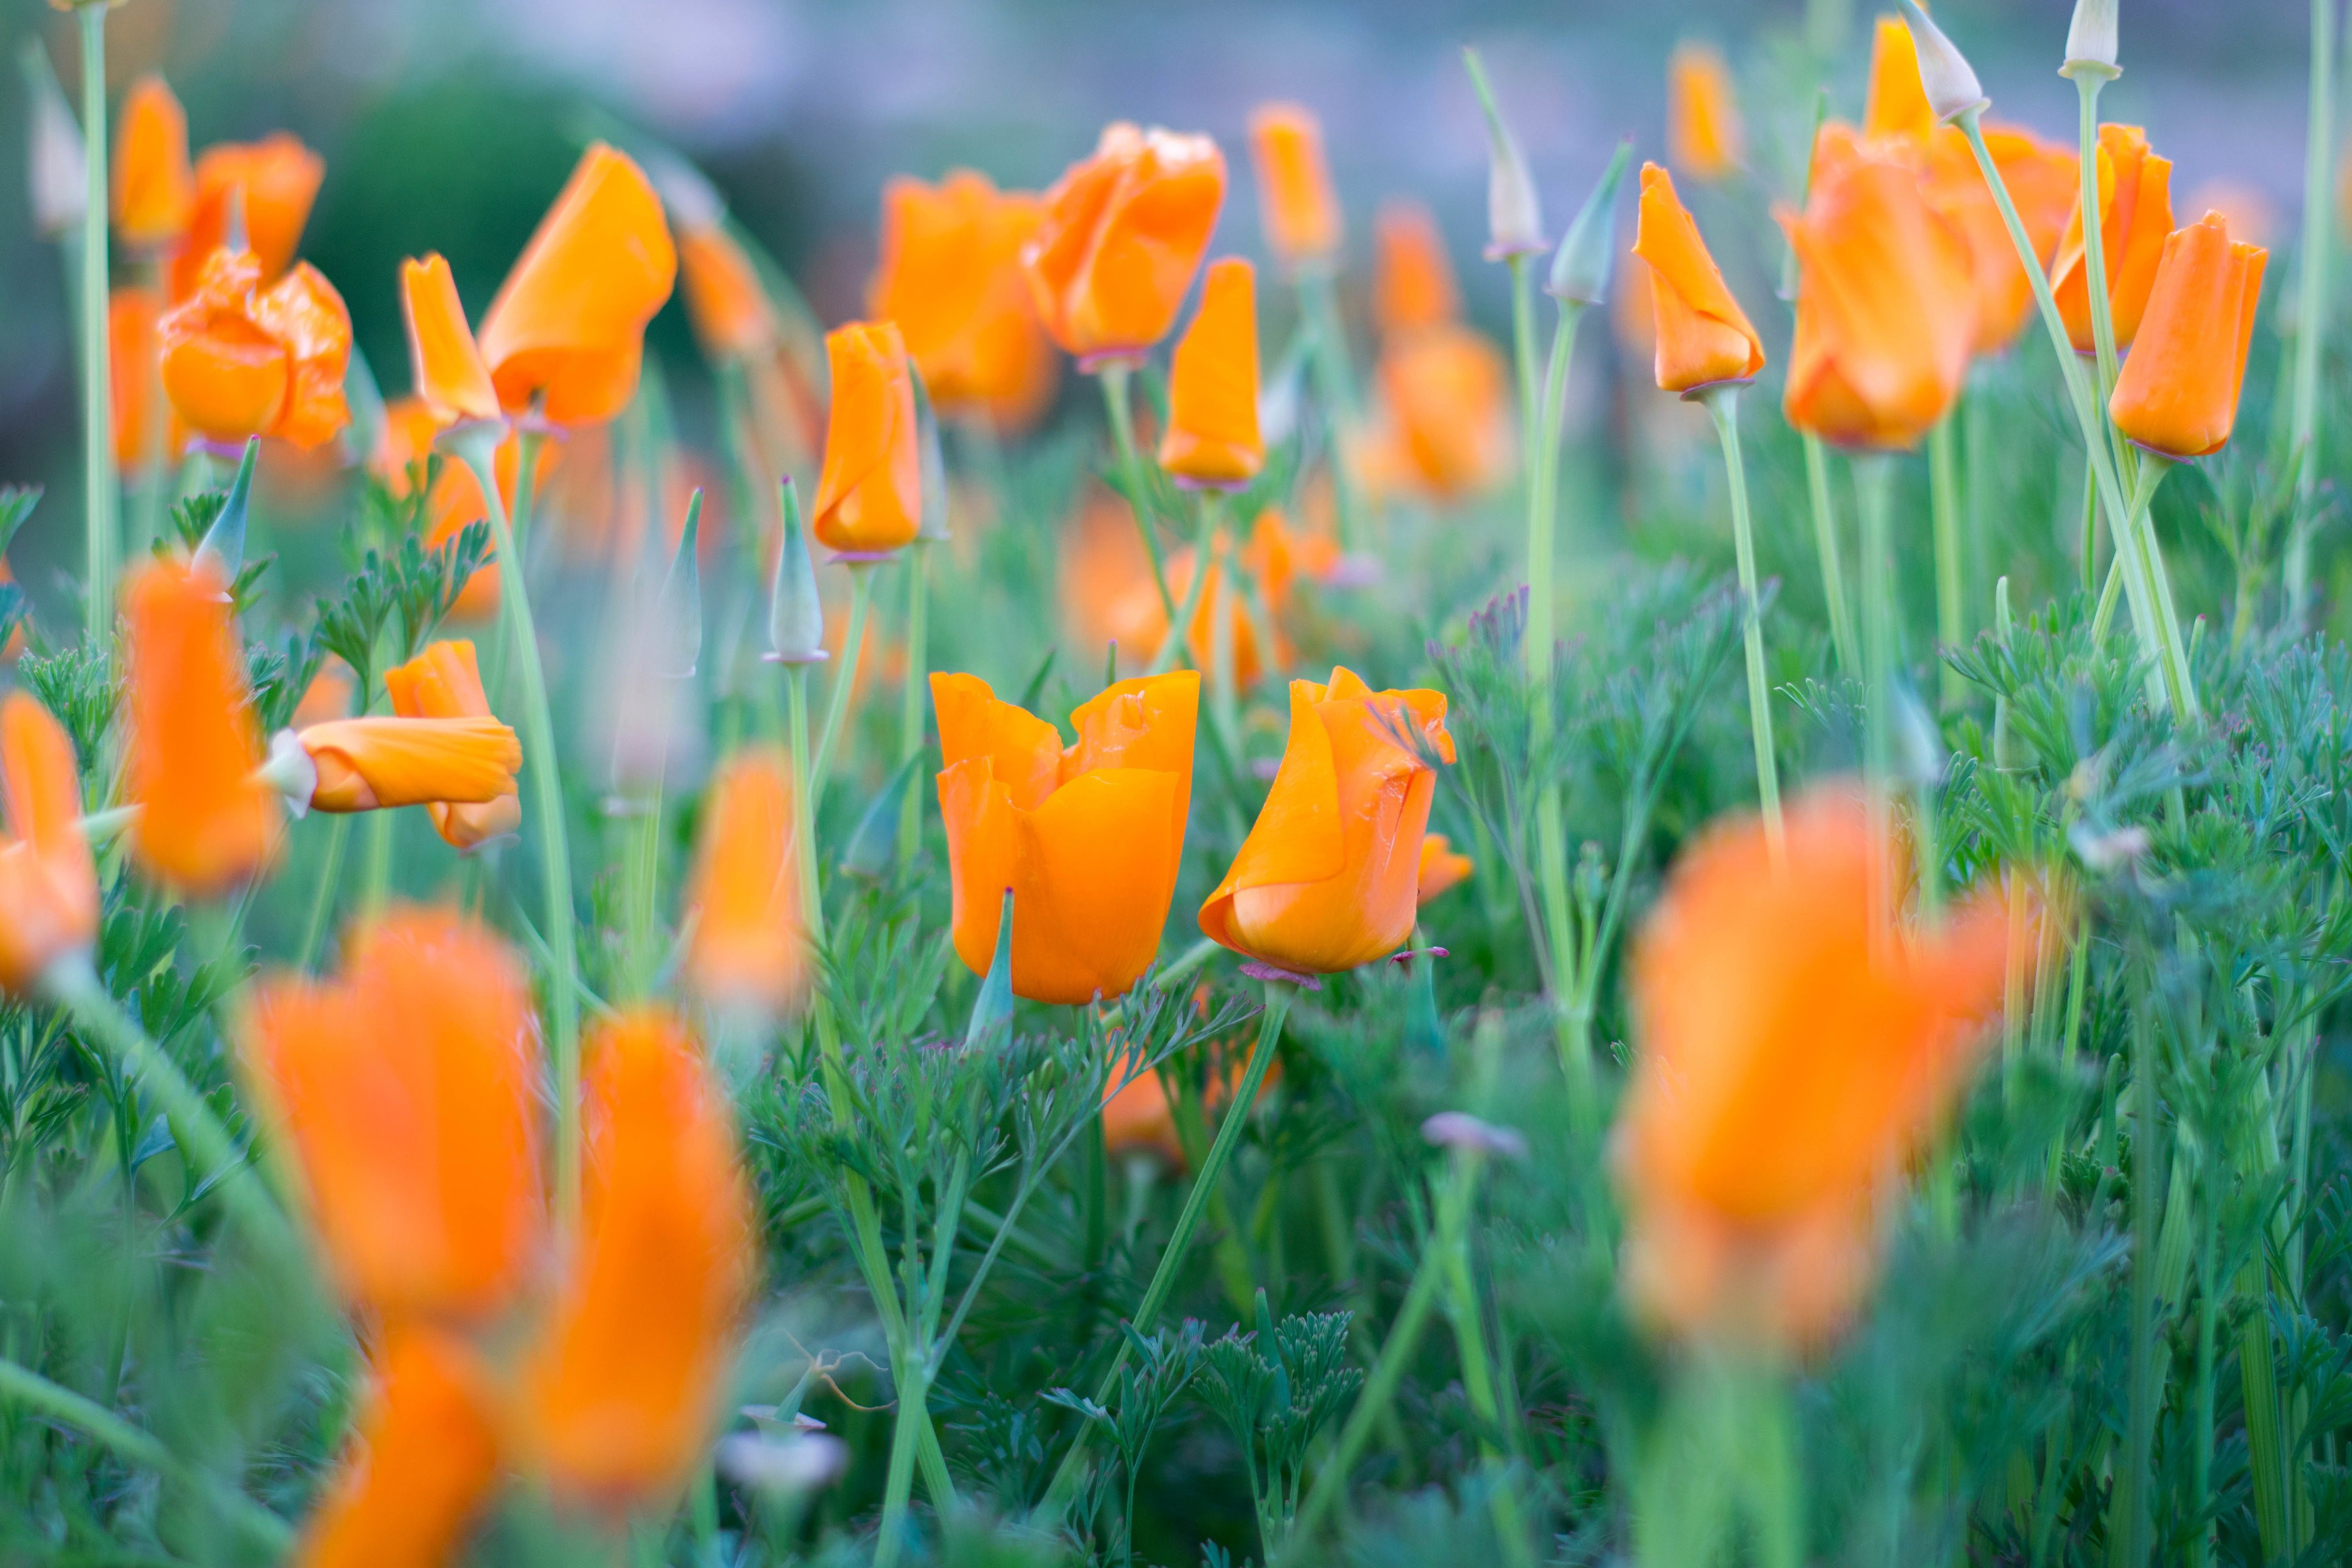 Tbi S 5 Best Views Of The California Poppy Blooms The Bold Italic